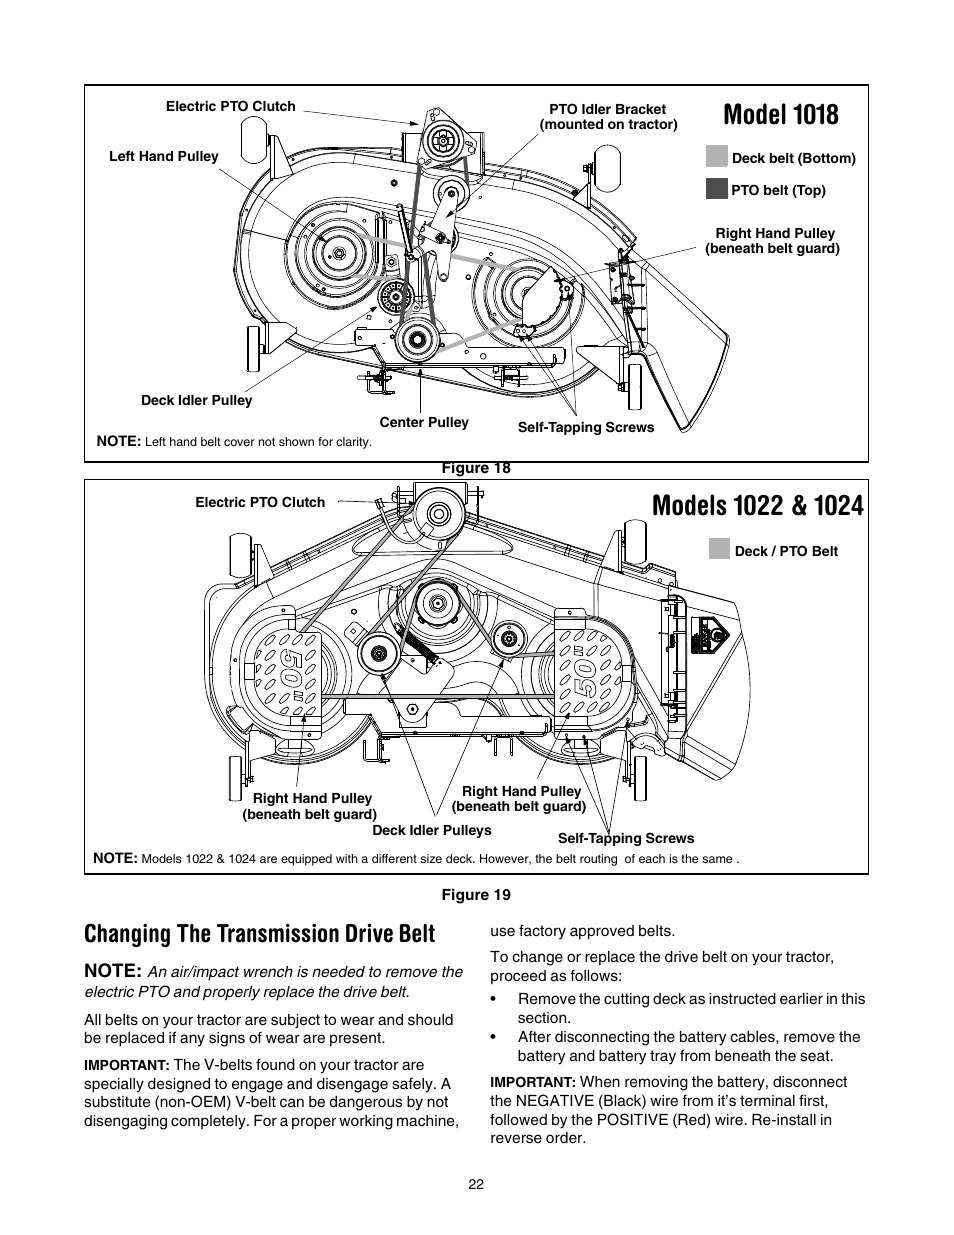 hight resolution of model 1018 changing the transmission drive belt cub cadet lt1022 user manual page 22 28